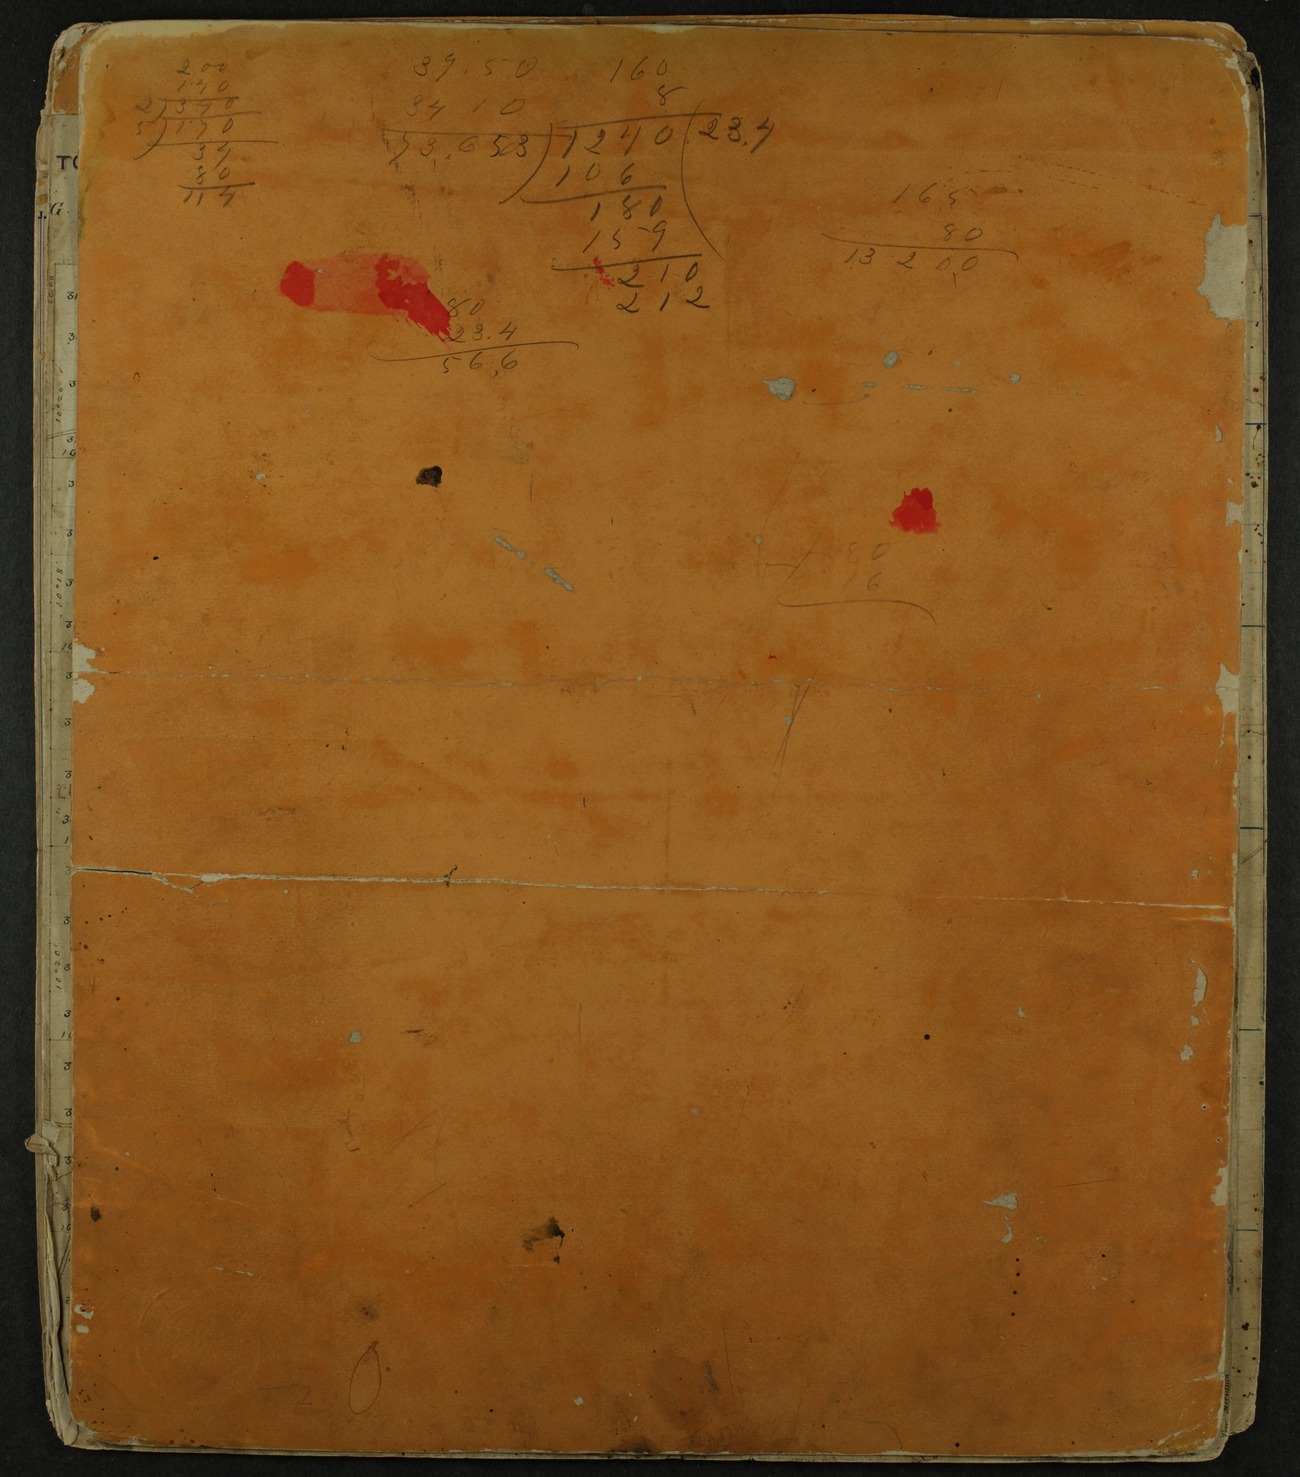 Shawnee Indian reservation plat maps of 1854 - 10